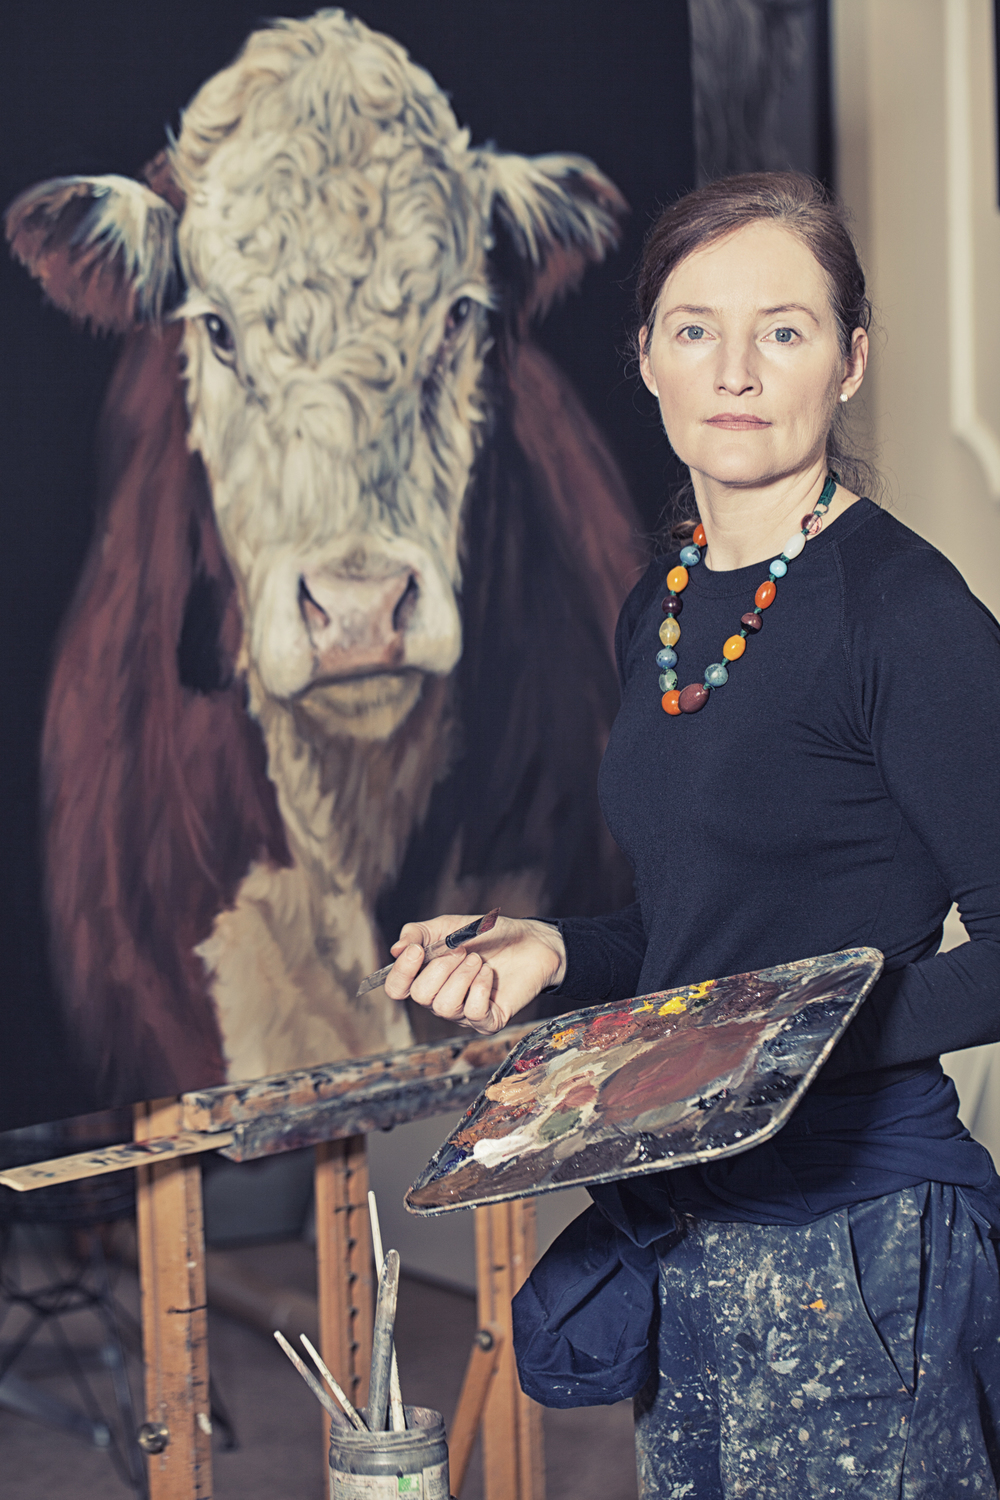 Joanne Cope in her studio